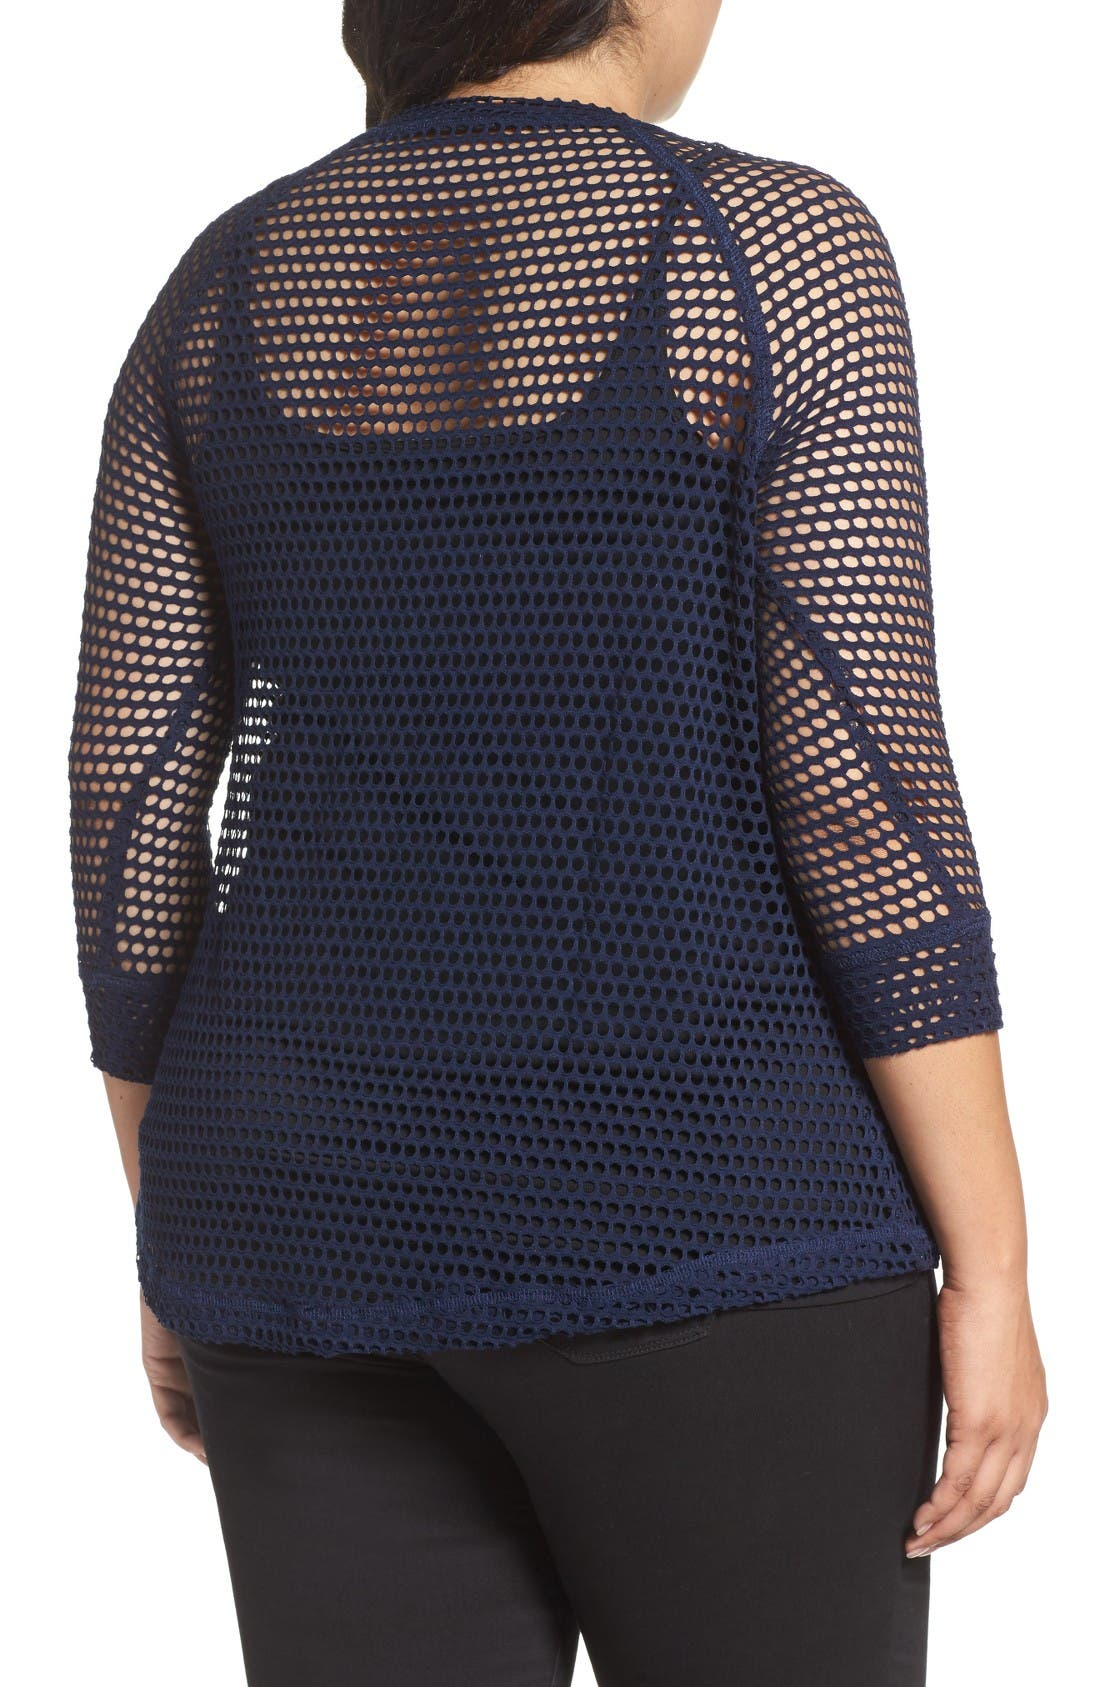 Alternate Image 3  - Bobeau Raglan Sleeve Mesh Top (Plus Size)